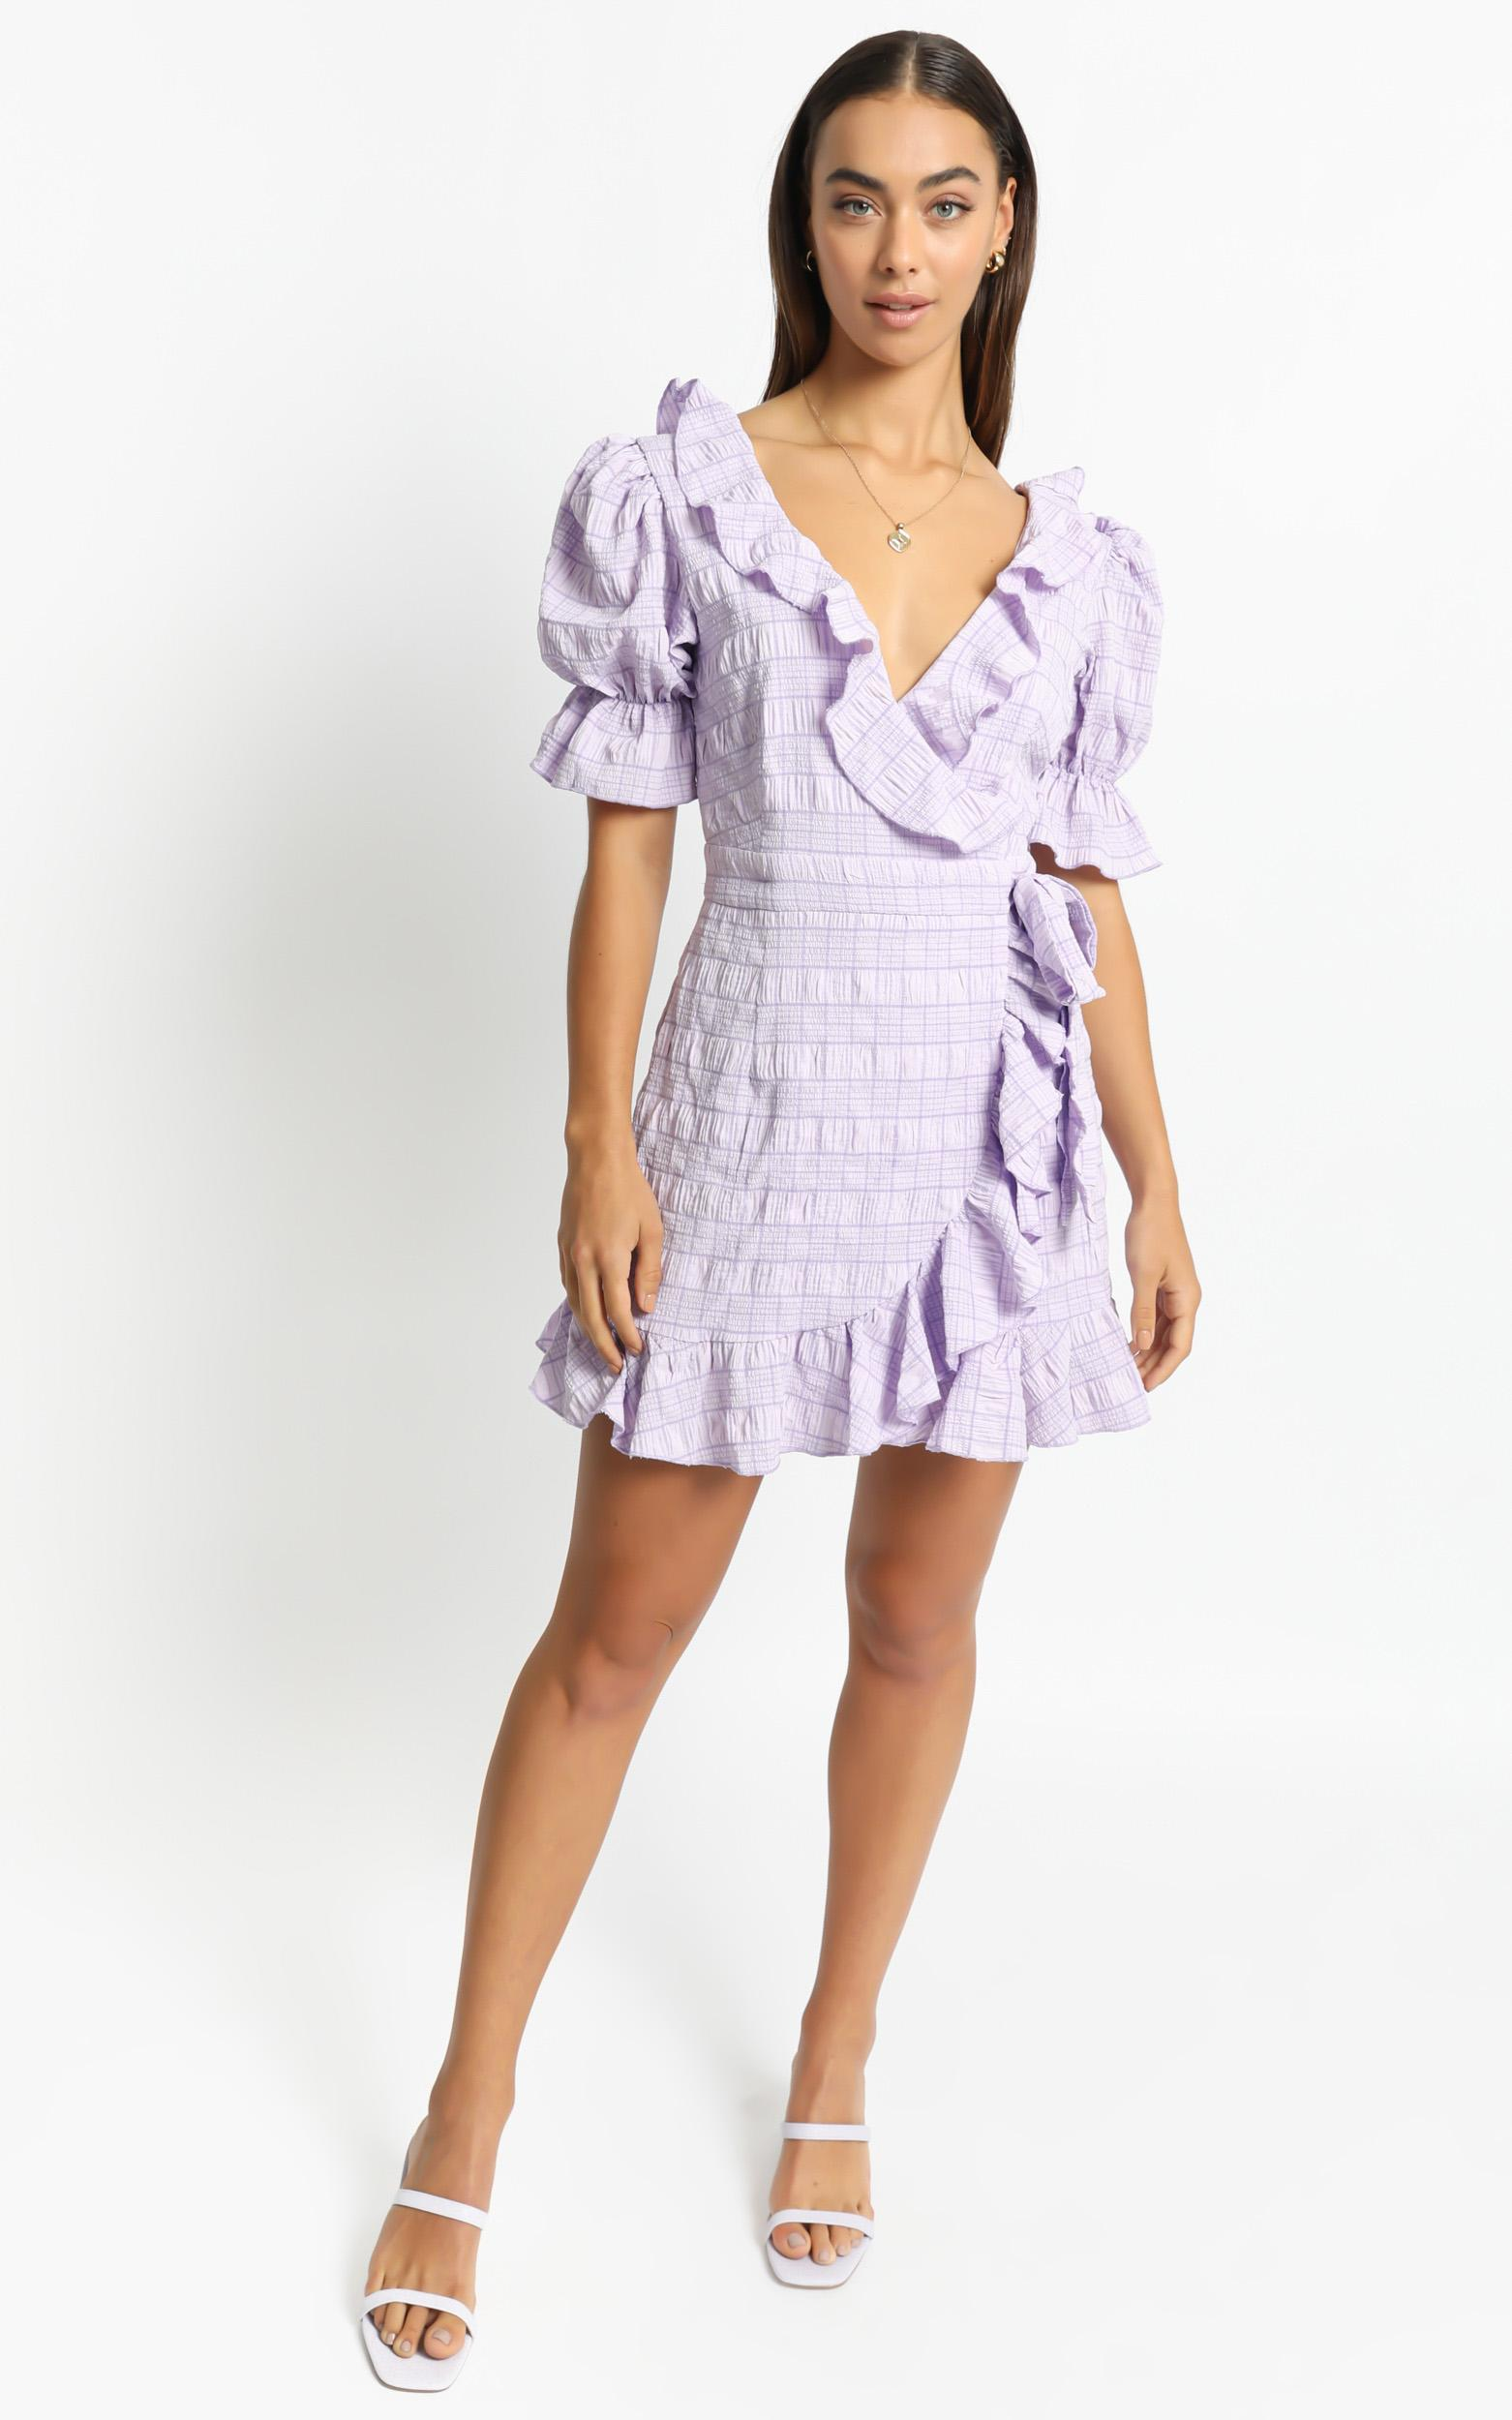 Cora Dress in Lilac Check - 6 (XS), PRP3, hi-res image number null